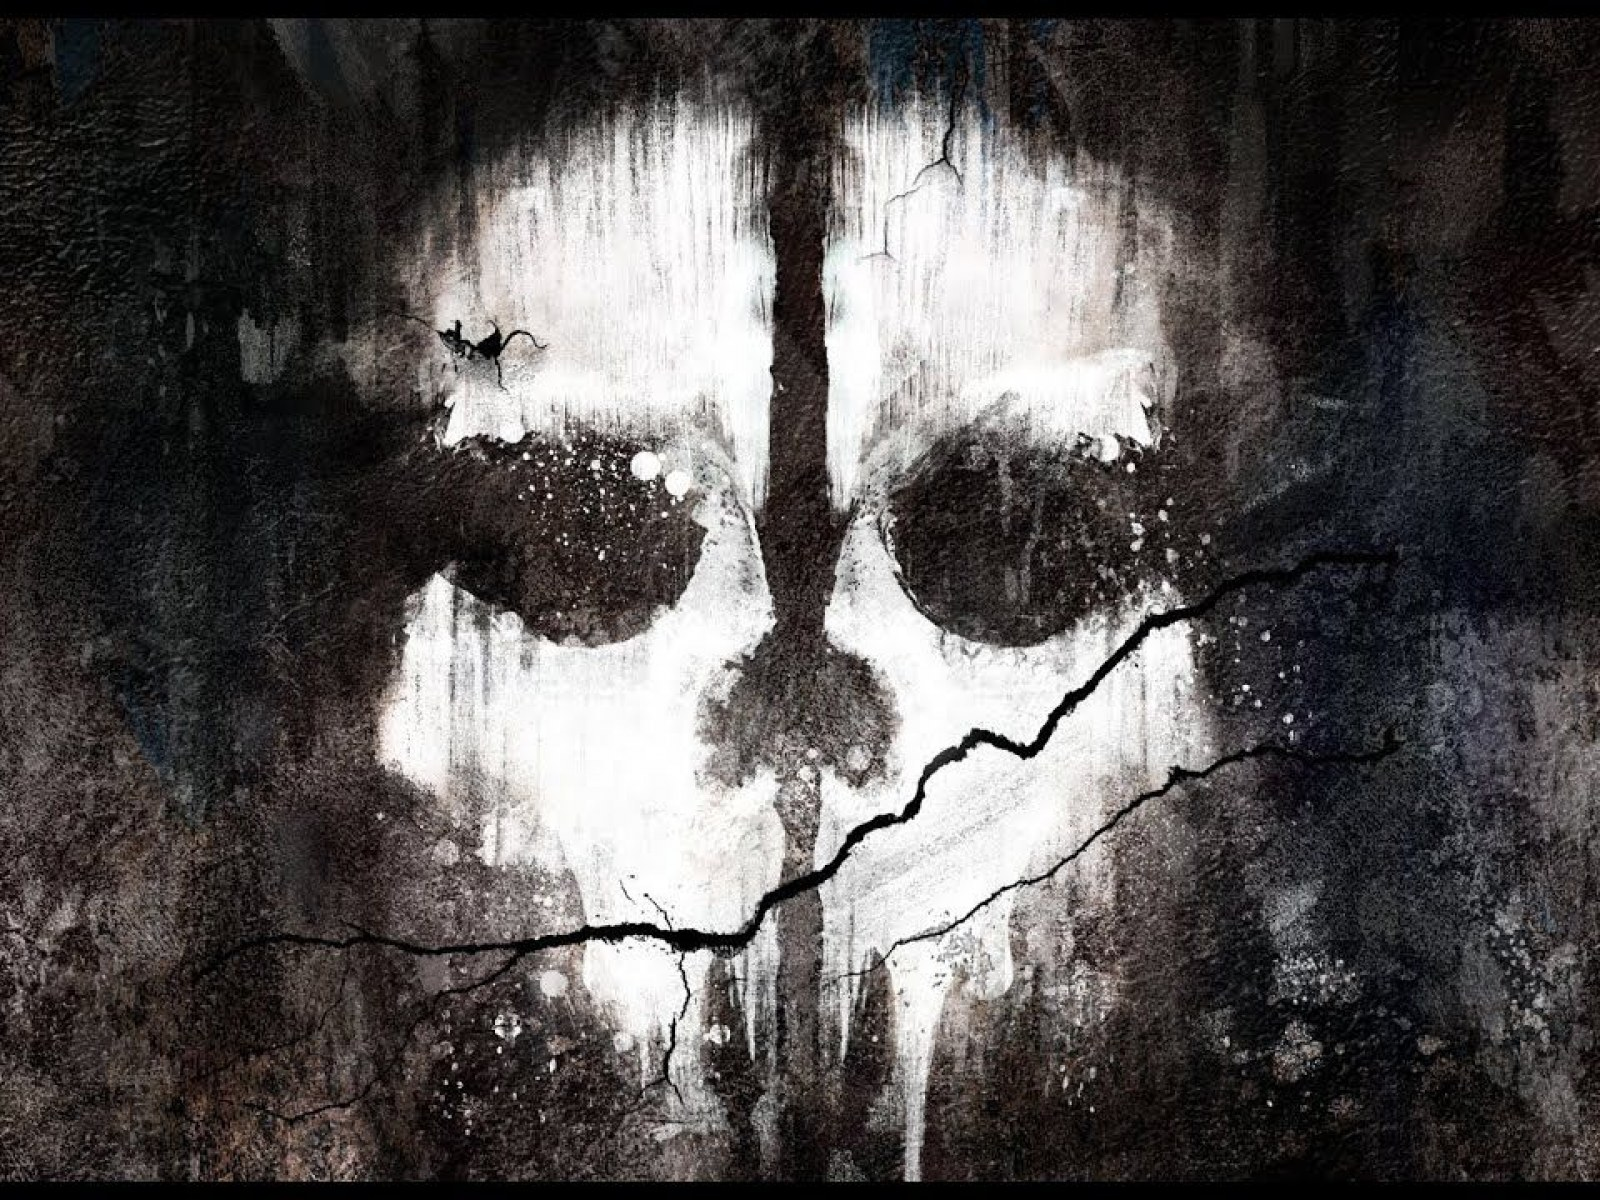 Call Of Duty 2019 May Be Ghosts 2 According To New Twitter Teases